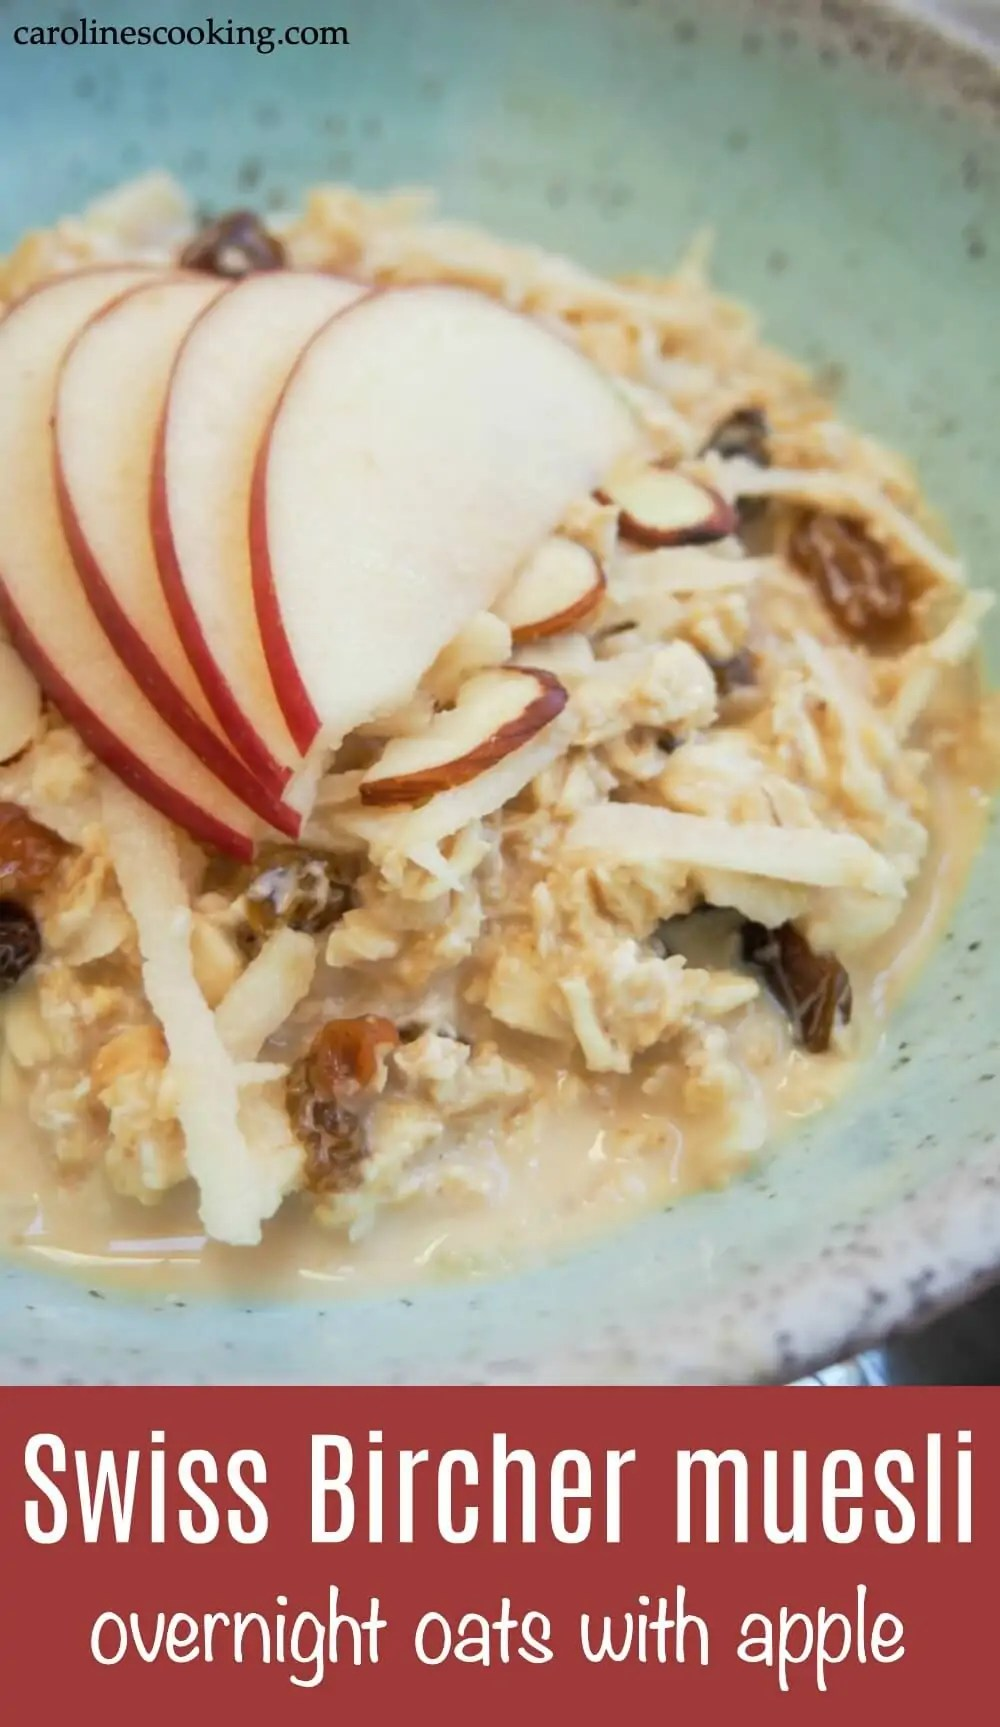 This delicious Swiss bircher muesli (the original overnight oats) makes a great start to your day - fresh, healthy and a lovely balance of smoothness & crunch. It's quick and easy to make, and is easily made dairy-free. #breakfast #easybreakfast #breakfastrecipe #overnightoats #apple